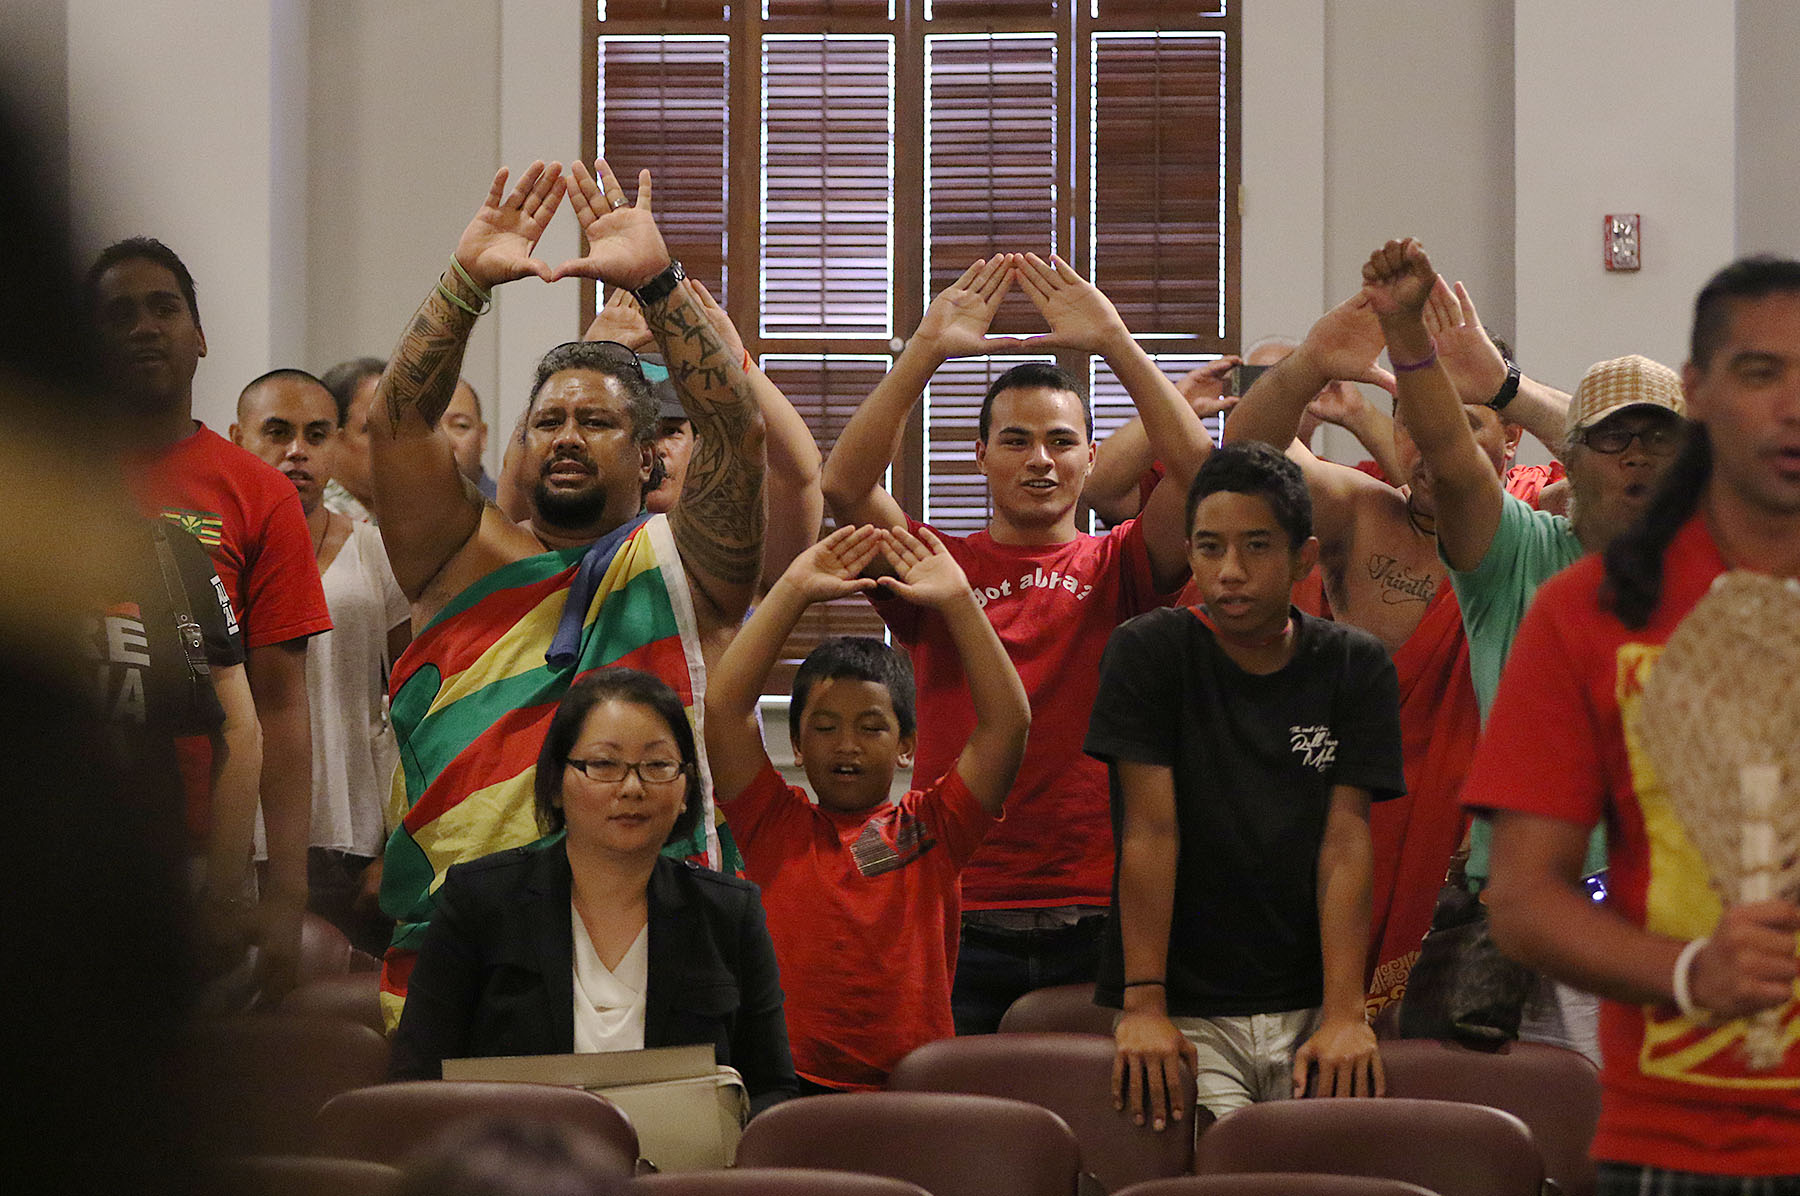 <p>Thirty Meter Telescope opponents sing after attorneys present oral arguments at the Hawaii Supreme Court in late August regarding whether the state acted properly in approving a construction permit in 2011 before conducting a contested case hearing. In December the high court invalidates the permit, meaning TMT officials must seek a new one if they still want to build the telescope.</p>